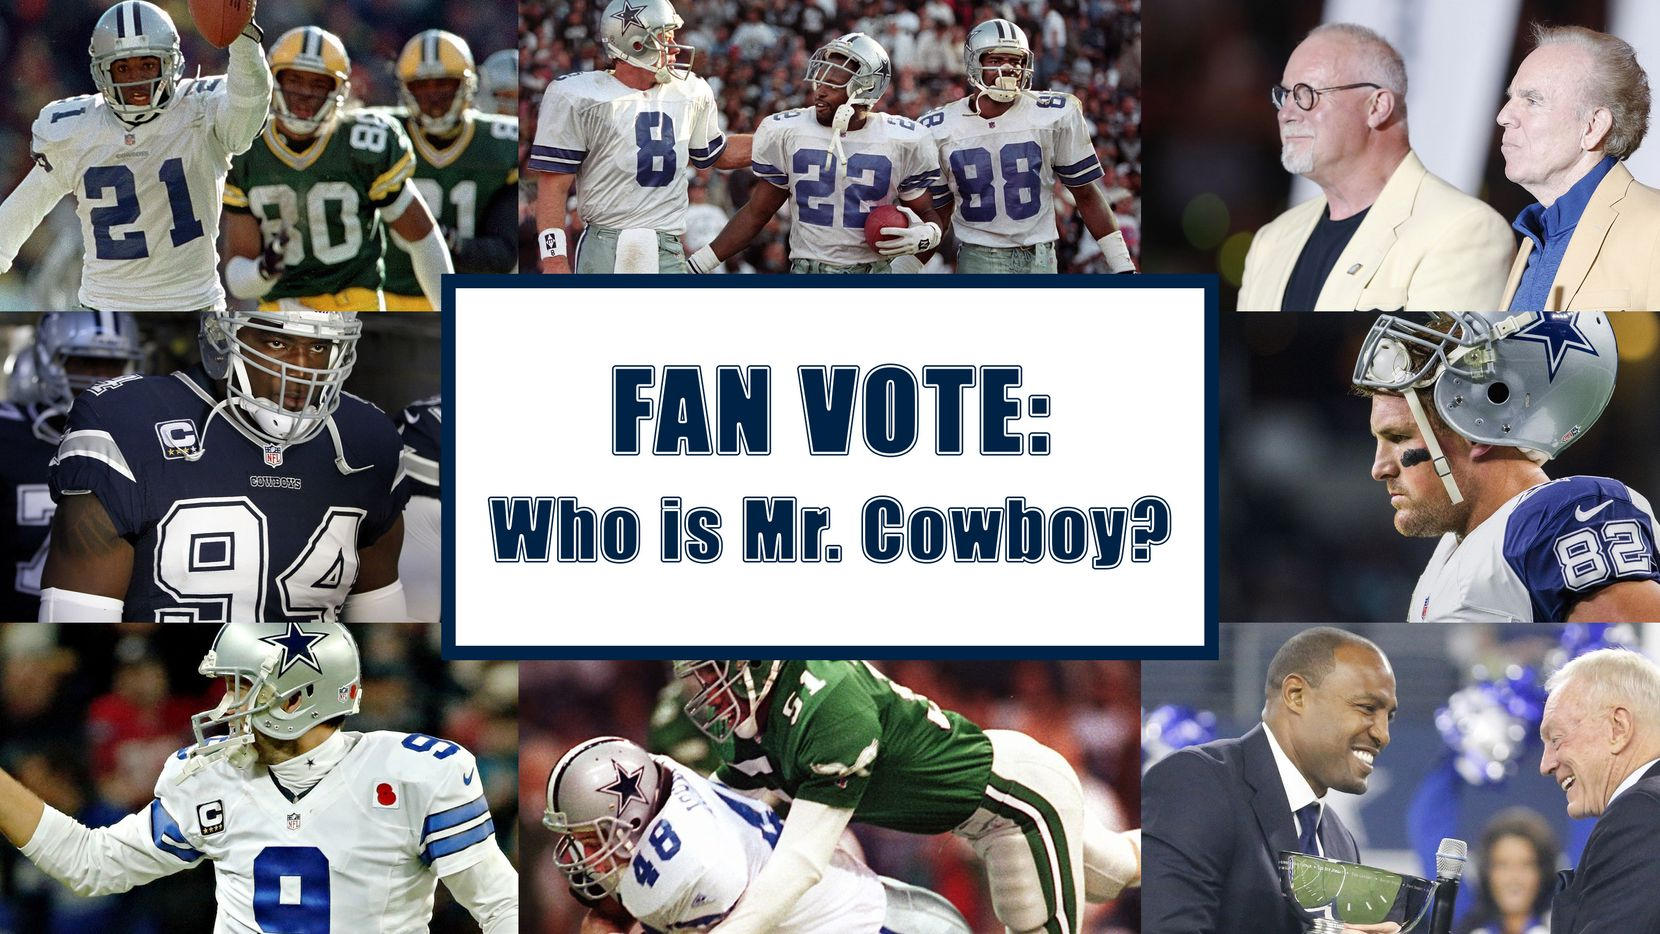 Numerous greats have donned the Cowboys' star, but which one stands above the rest?